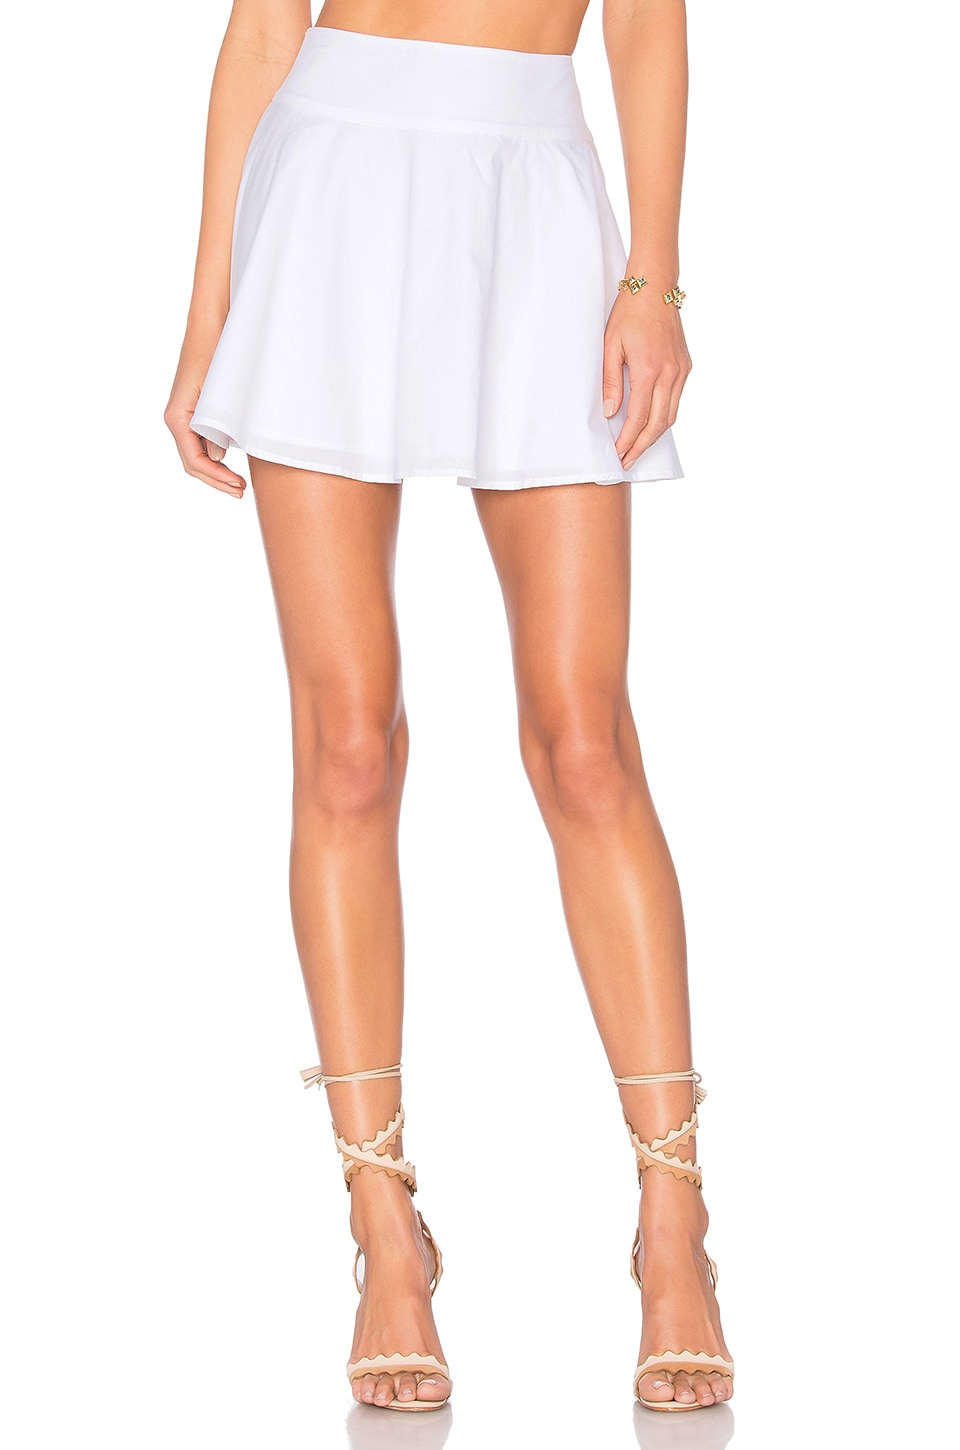 L'Academie x REVOLVE The Circle Skirt in White